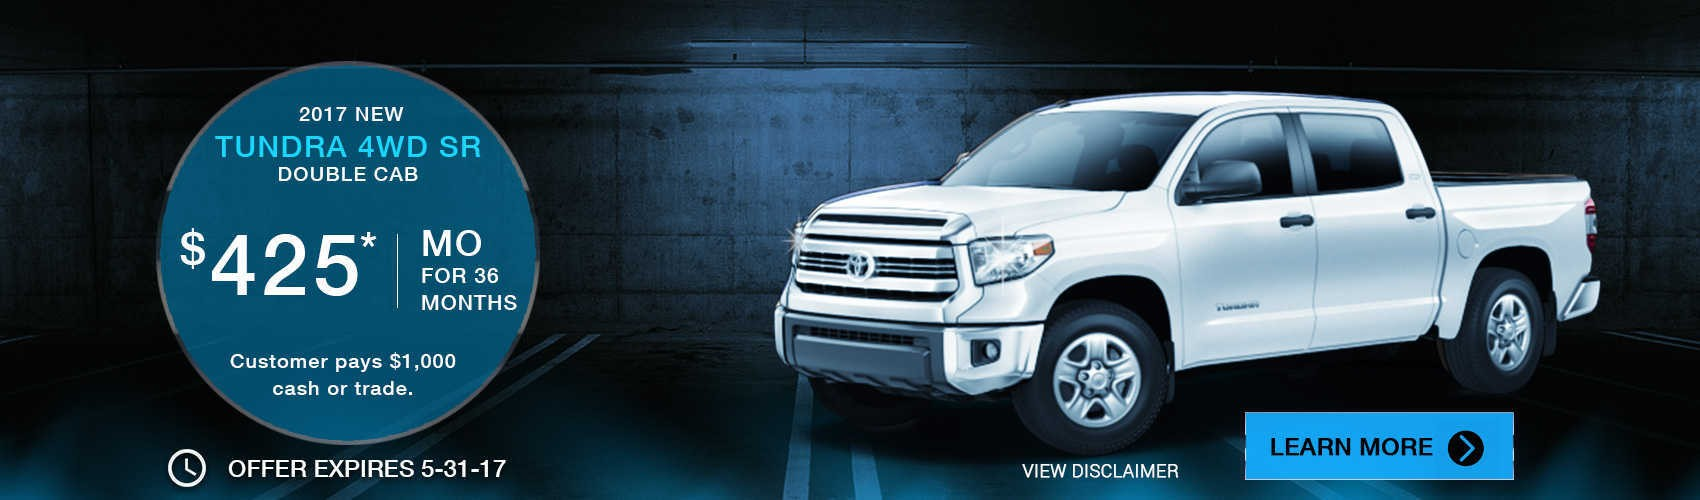 2017 Tundra 4WD Double Cab at $425* per month at Beaverton Toyota